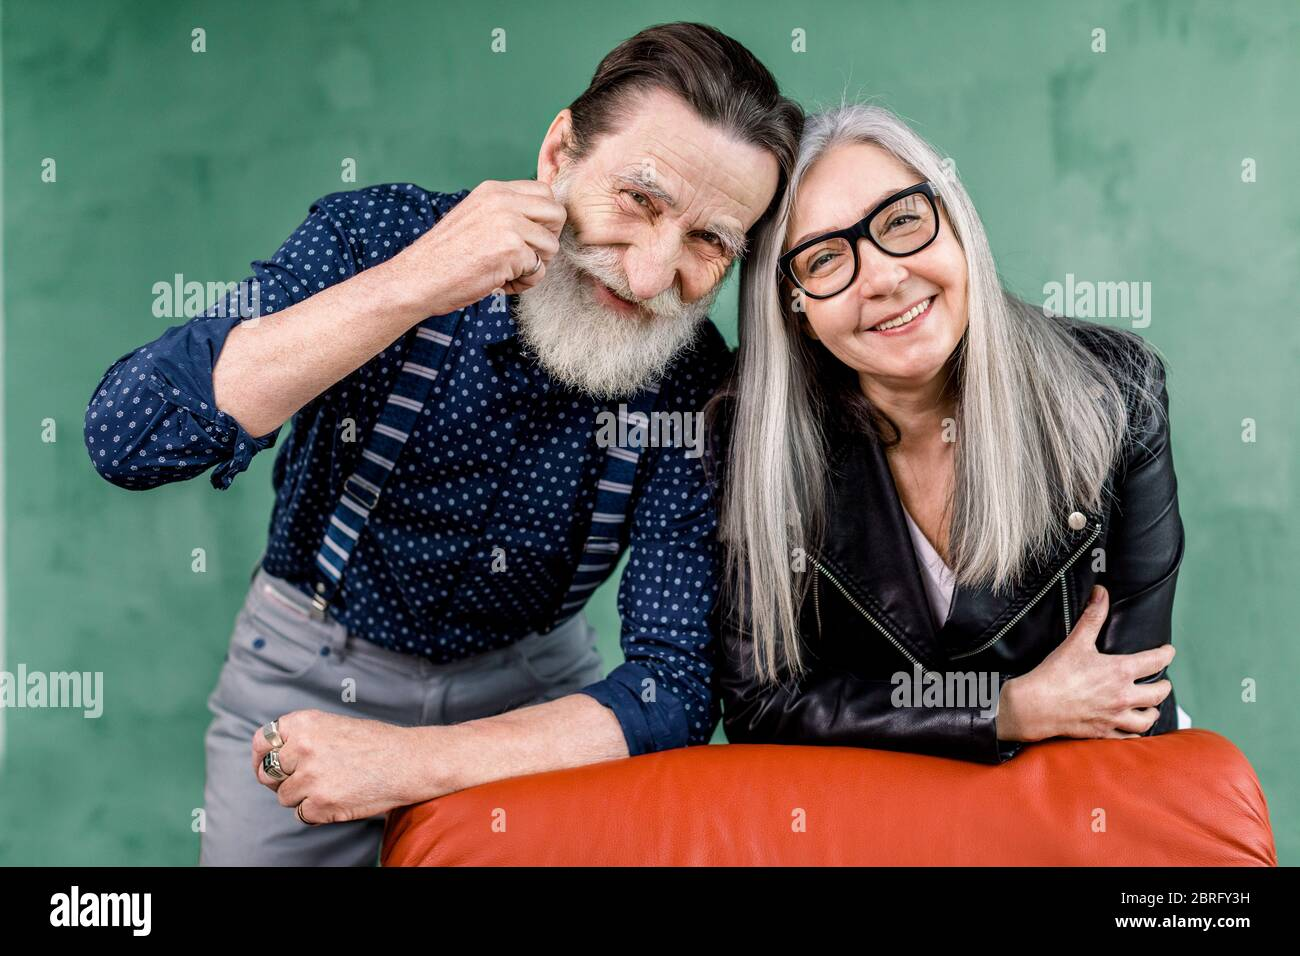 Elderly couple. Joyful nice elderly couple smiling while being in a great mood, leaning on red soft chair and touching foreheads. Portrait of romantic Stock Photo